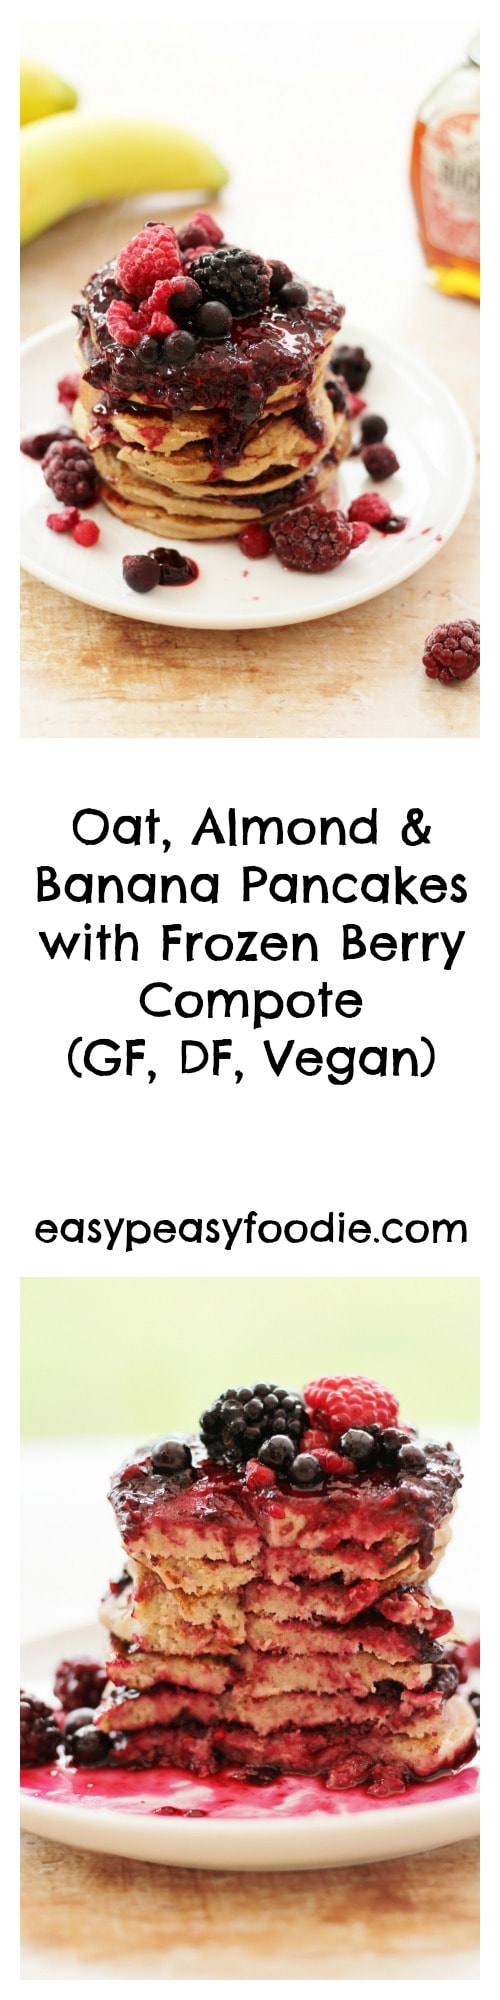 Healthy, easy and delicious, these Oat, Almond and Banana Pancakes with Frozen Berry Compote are gluten, dairy and egg free. They are free from refined sugar and vegan too, meaning almost everybody can enjoy them! #pancakes #pancakeday #shrovetuesday #vegan #glutenfree #dairyfree